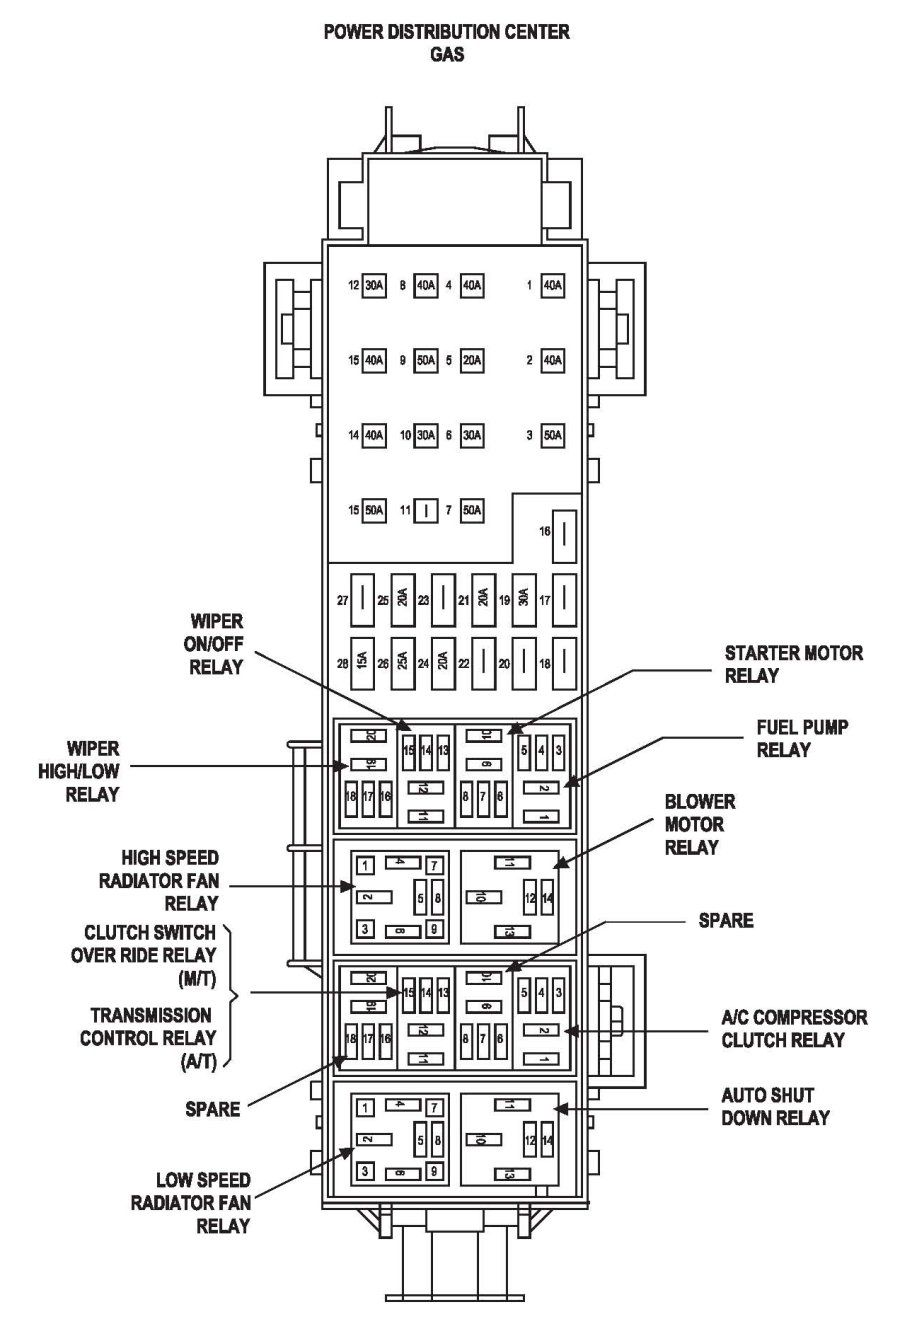 b3536c3739783eb19f827744cc42c3c4 jeep liberty fuse box diagram image details jeep liberty 2004 jeep liberty interior fuse block at aneh.co